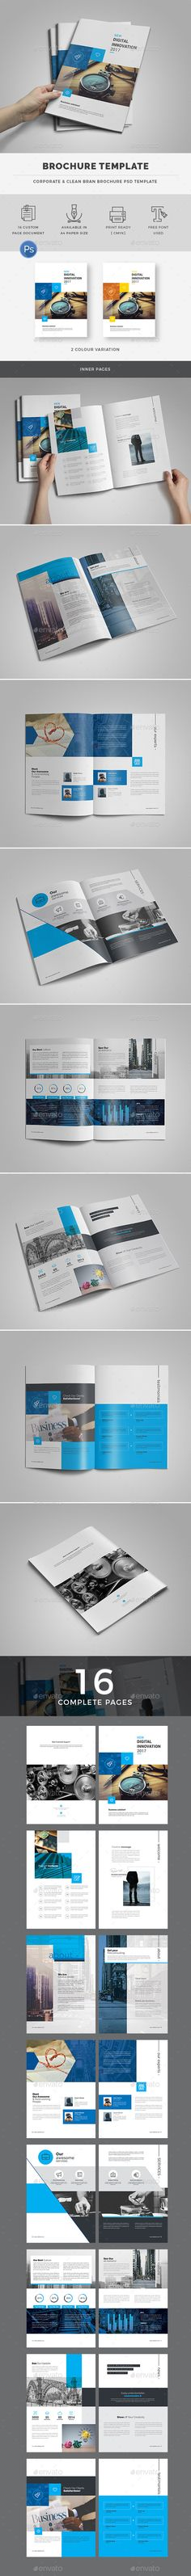 #Business #Brochure Template - Brochures Print #Templates Download here: https://graphicriver.net/item/business-brochure-template/18997046?ref=alena994